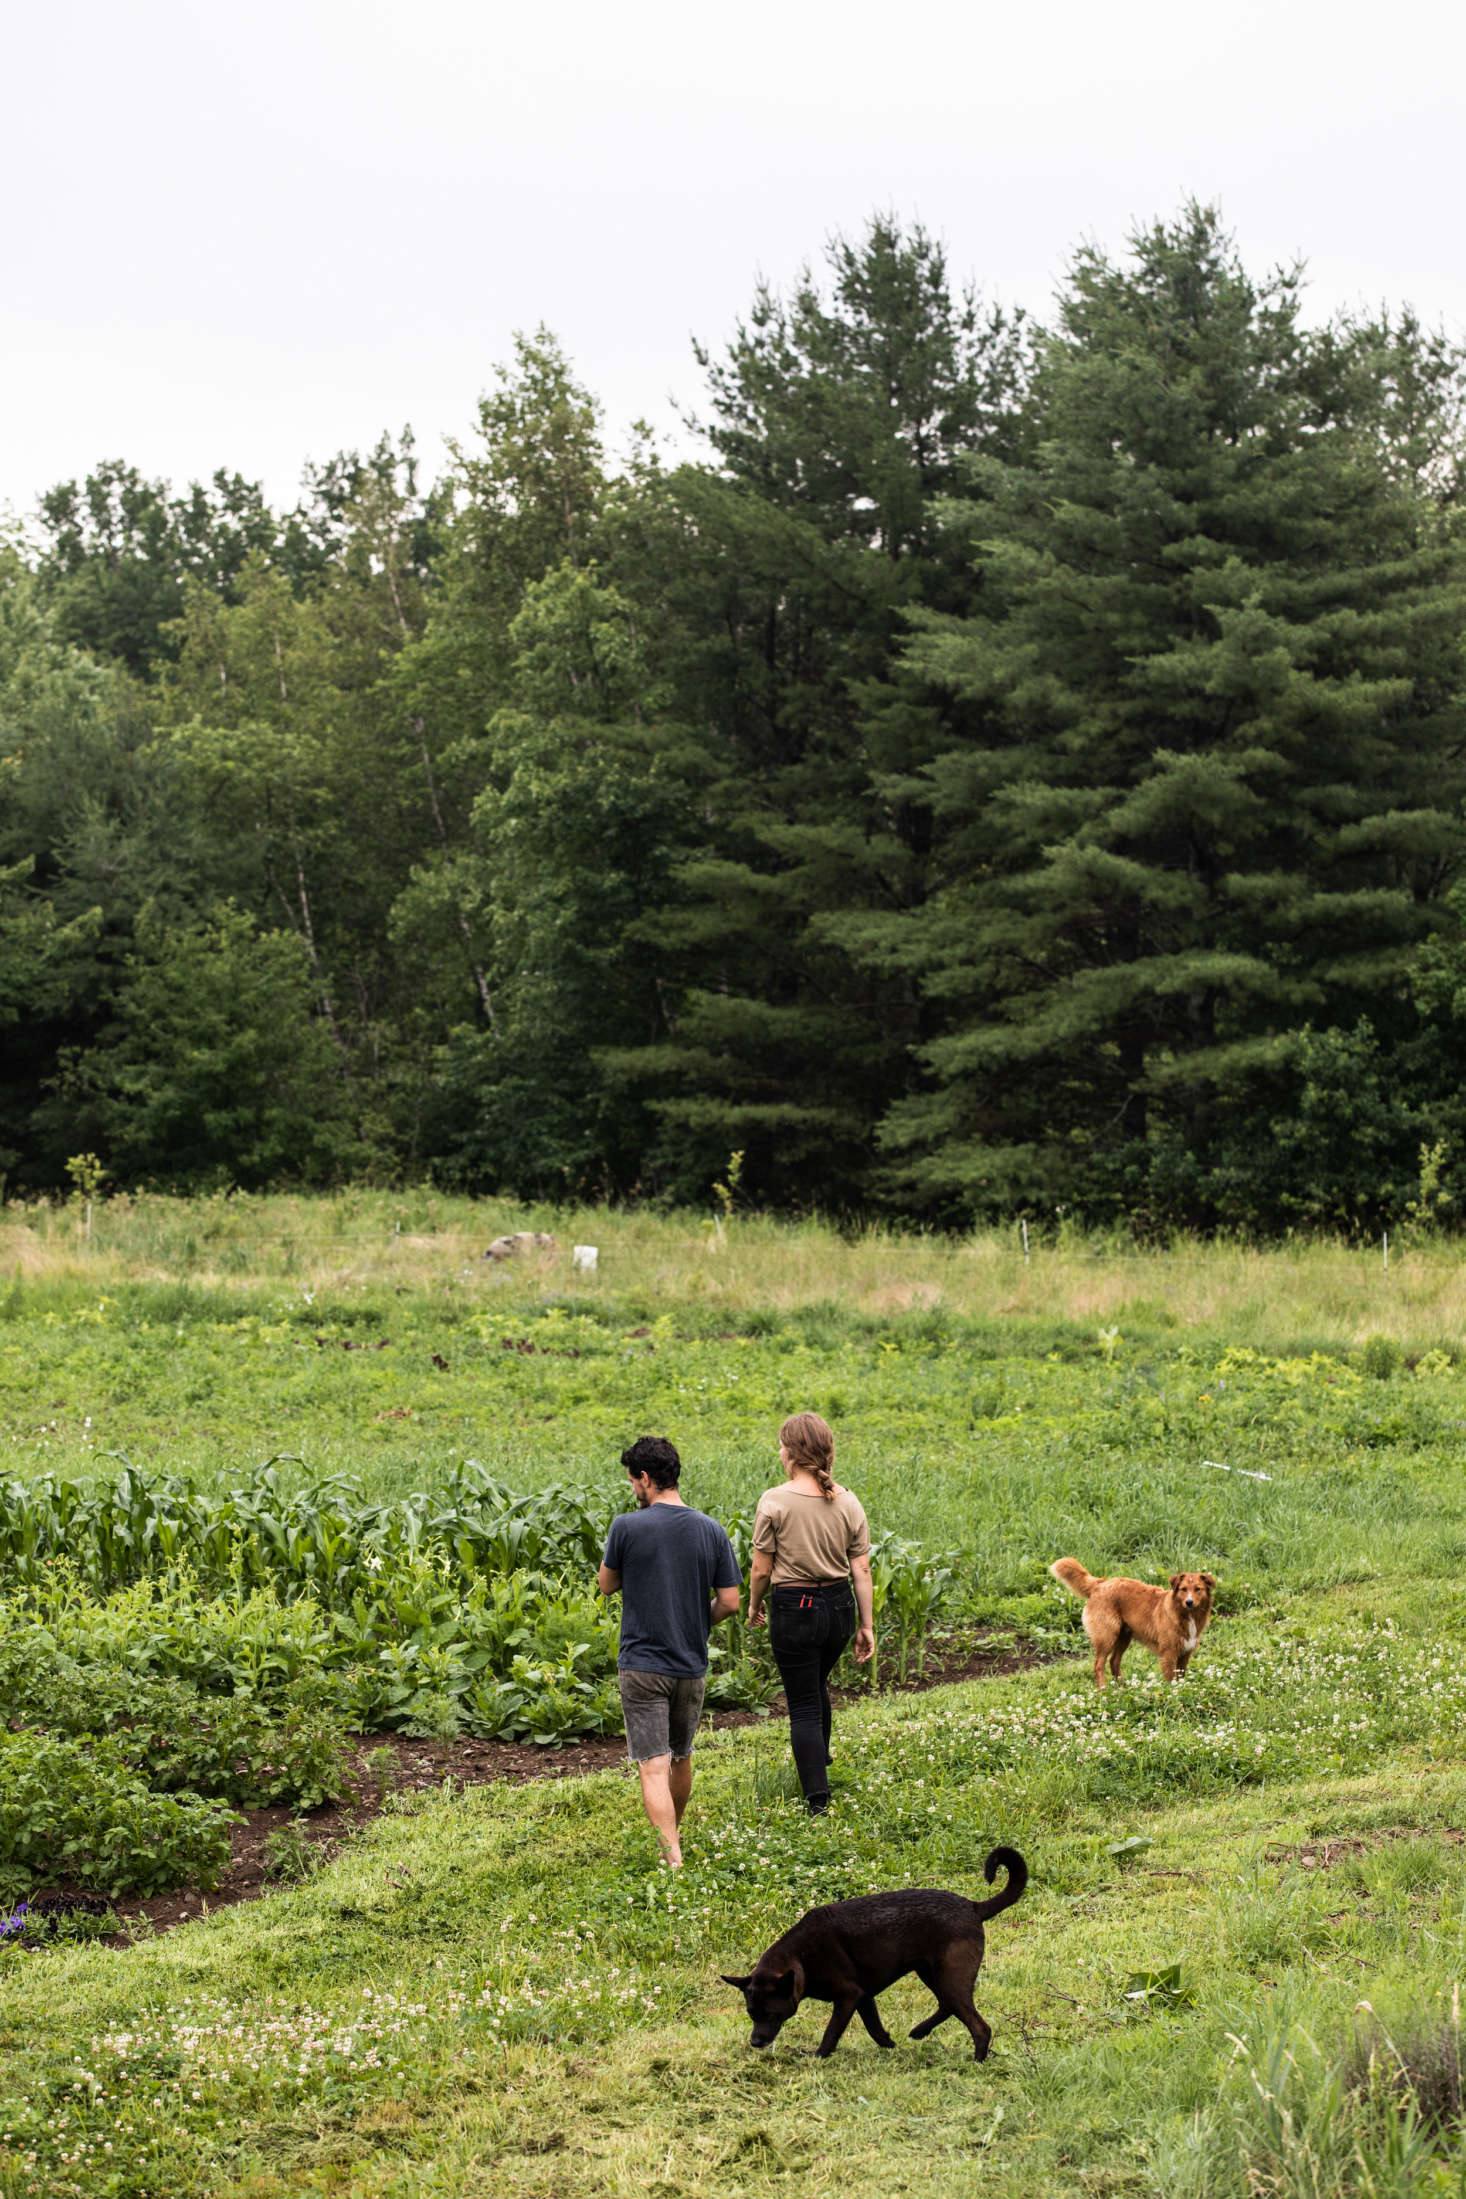 In addition to birds and hogs, the couple tends an acre of vegetables, herbs, and flowers &#8